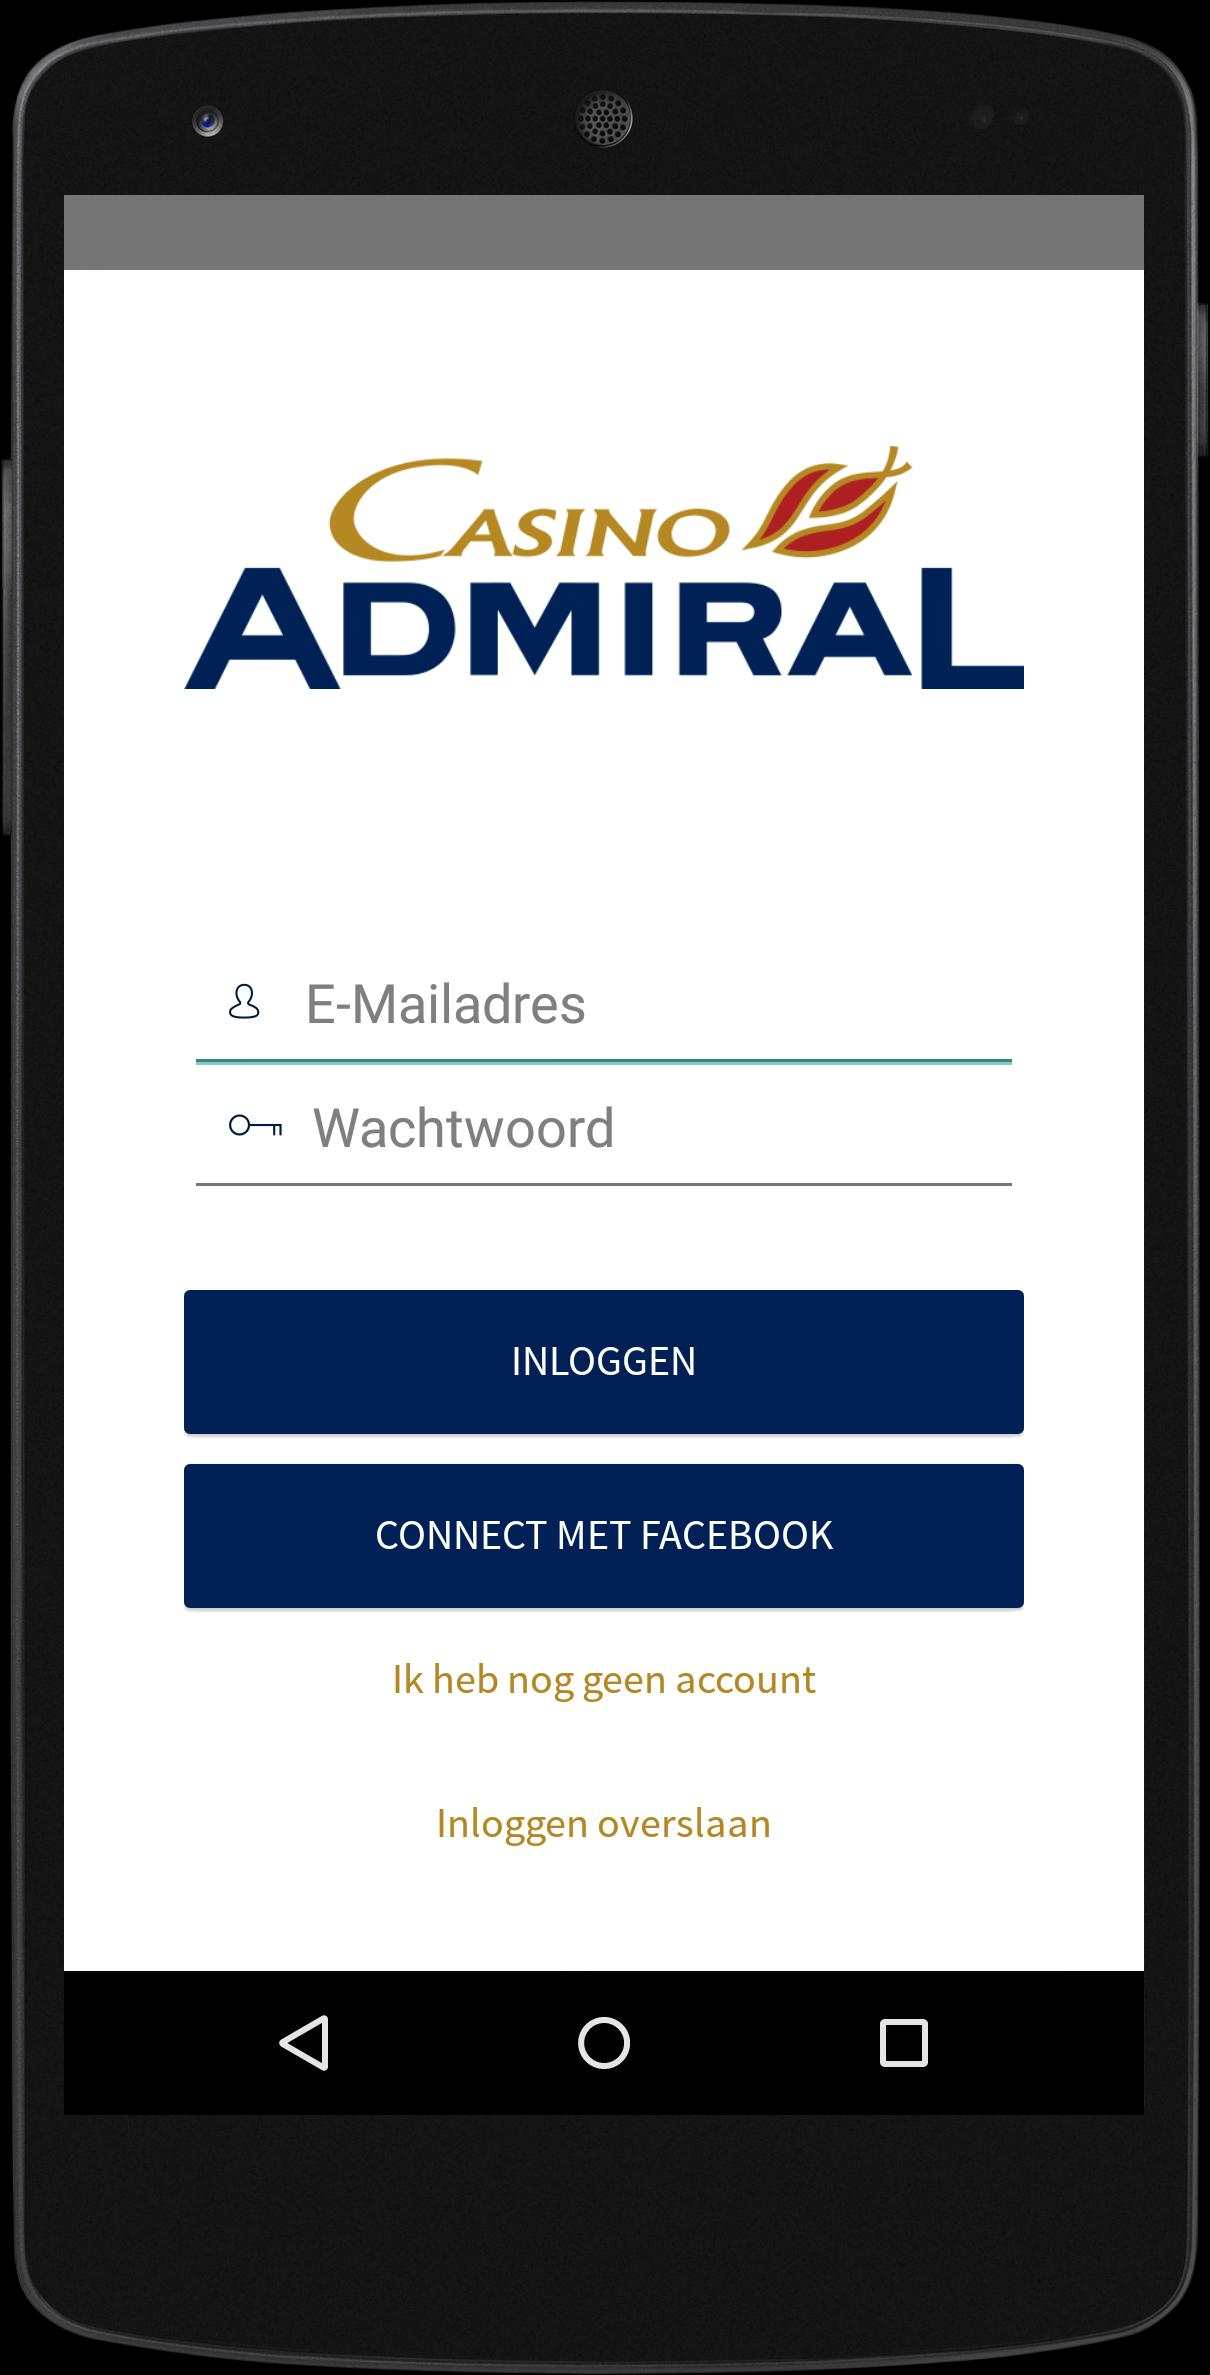 Casino Admiral Holland 1.4.2 Screenshot 1